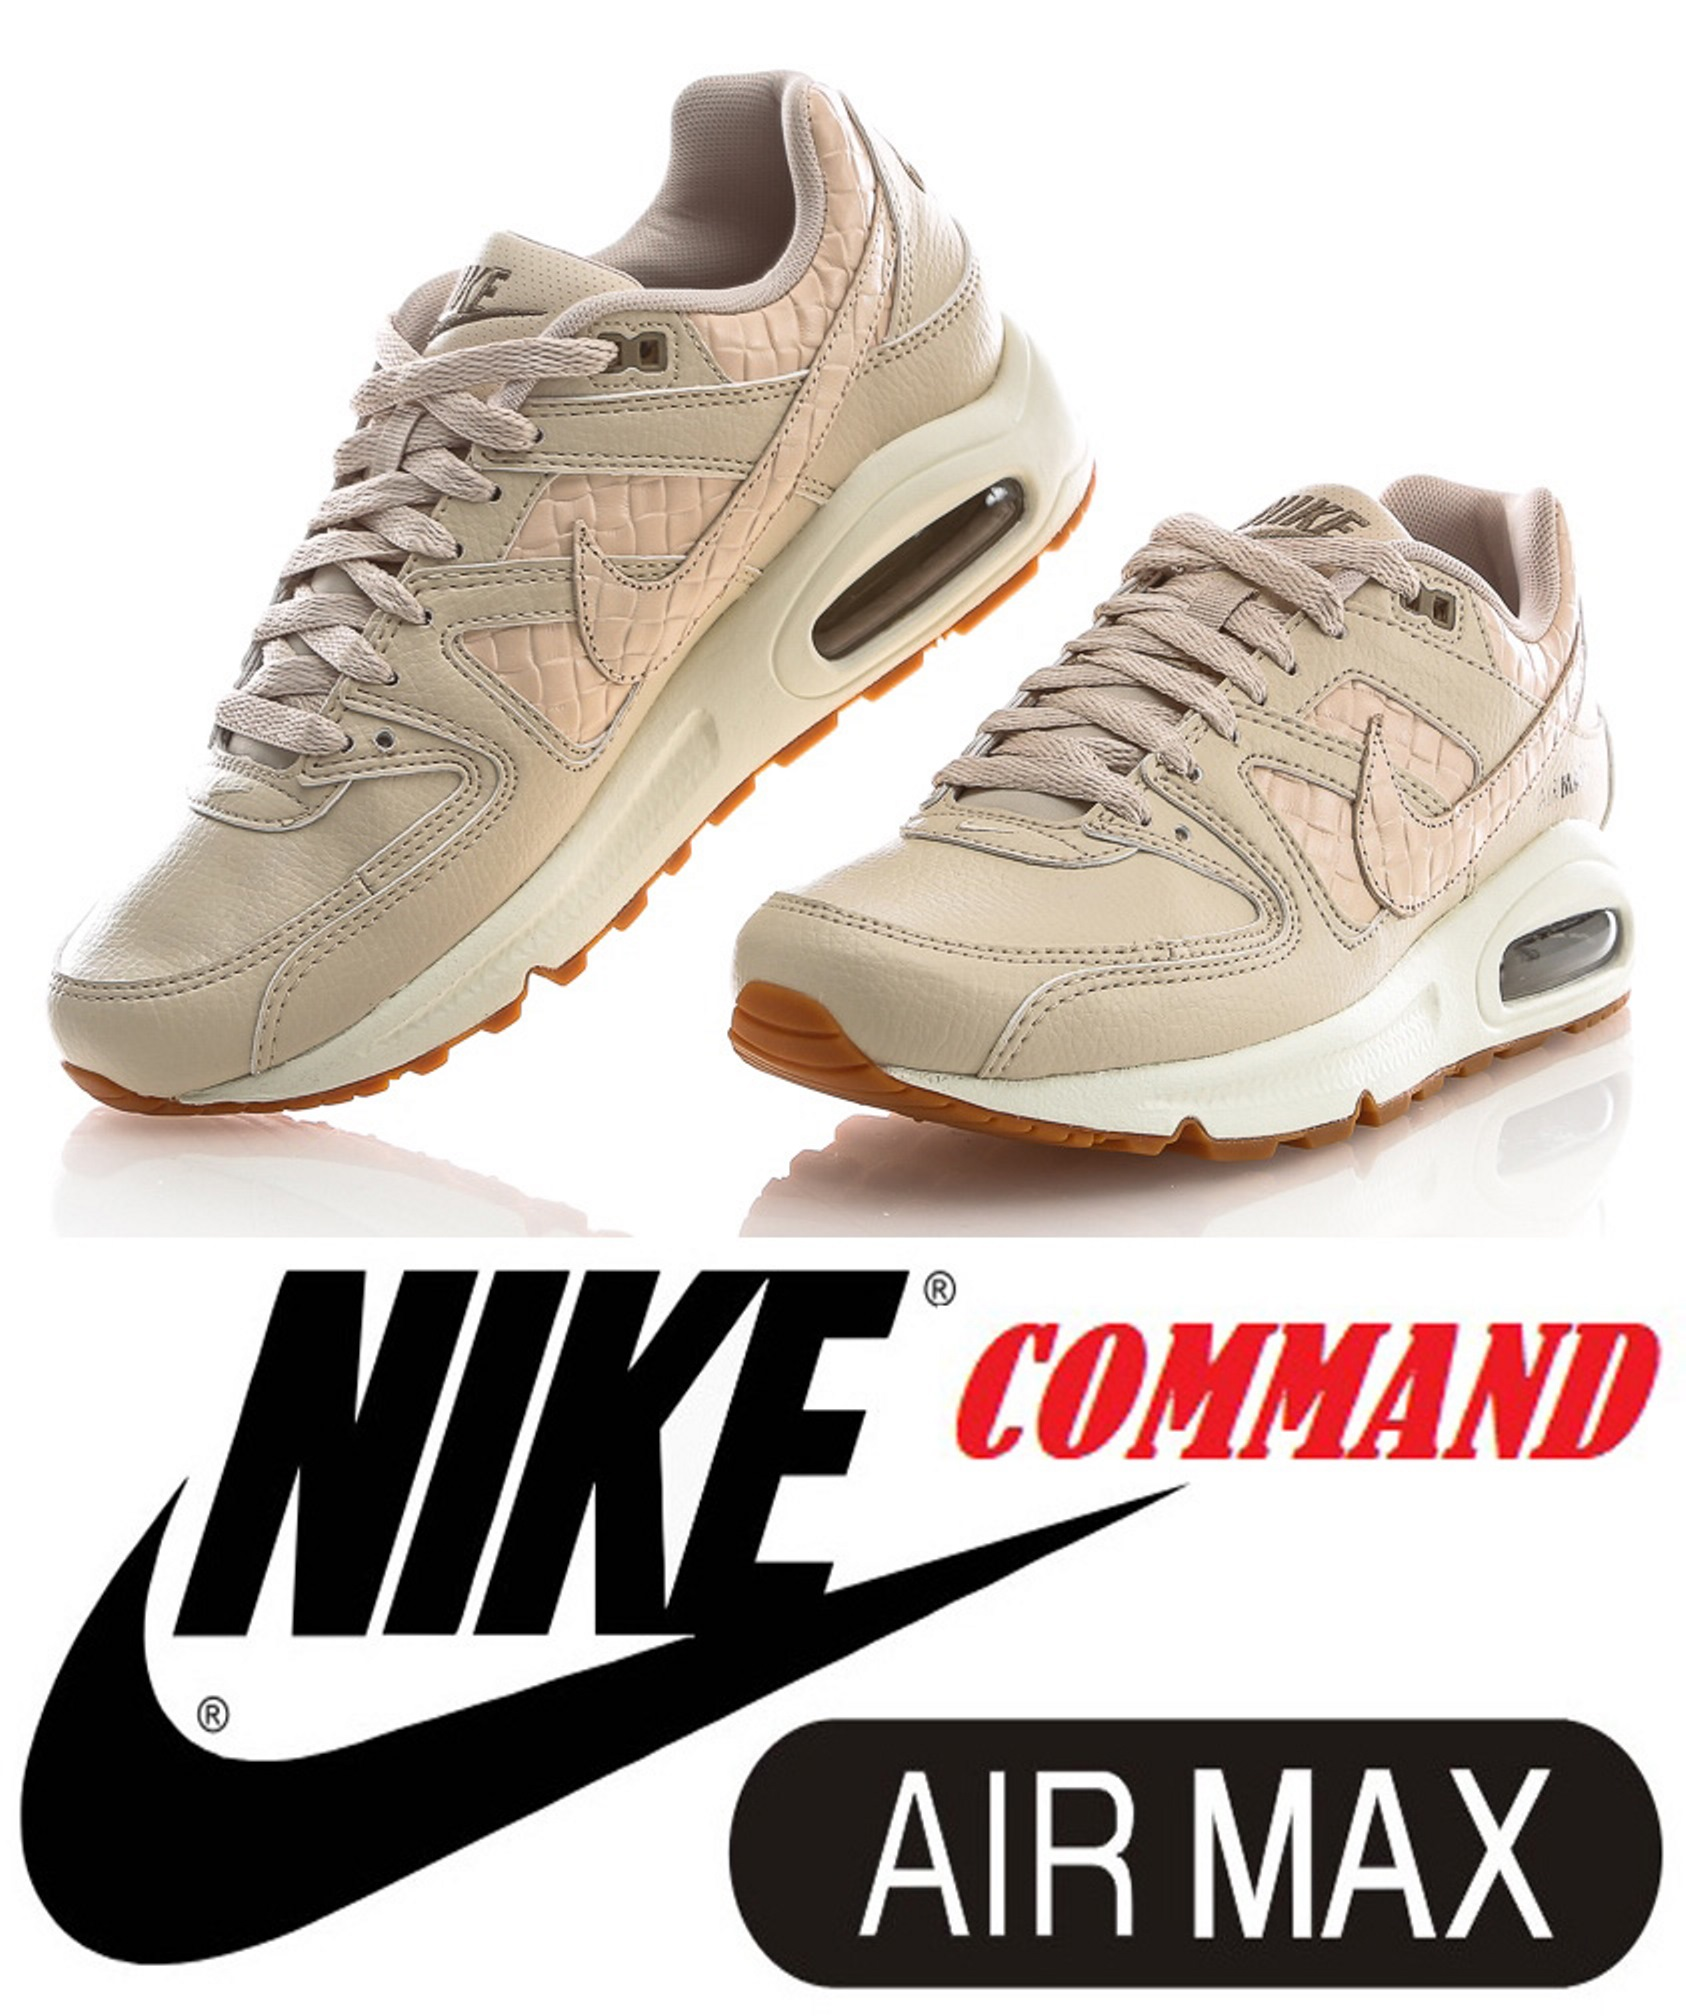 Tenisky zn. NIKE AIR MAX COMMAND PRM vel. 44,5